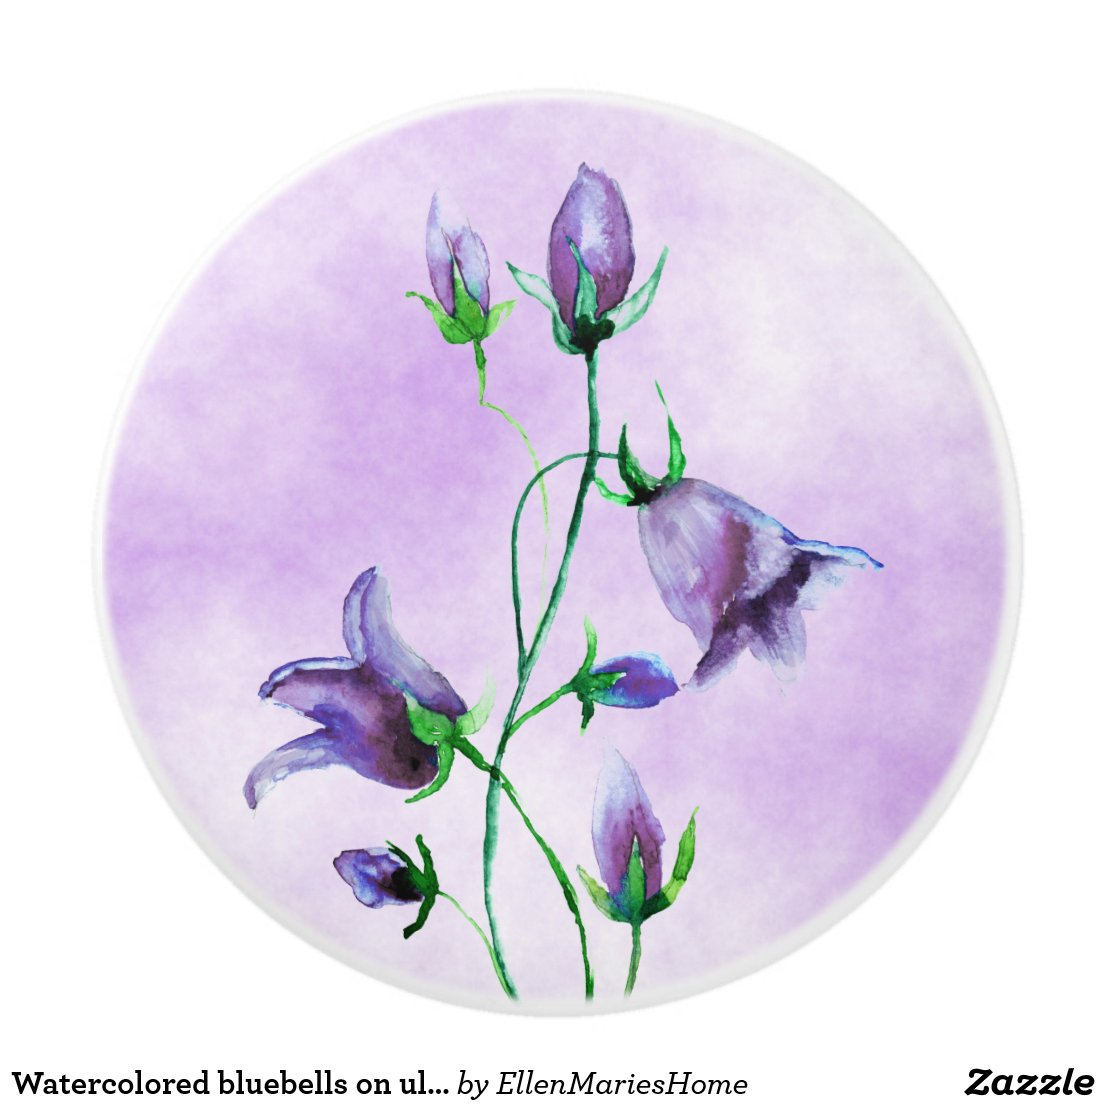 Watercolored bluebells on ultra violet